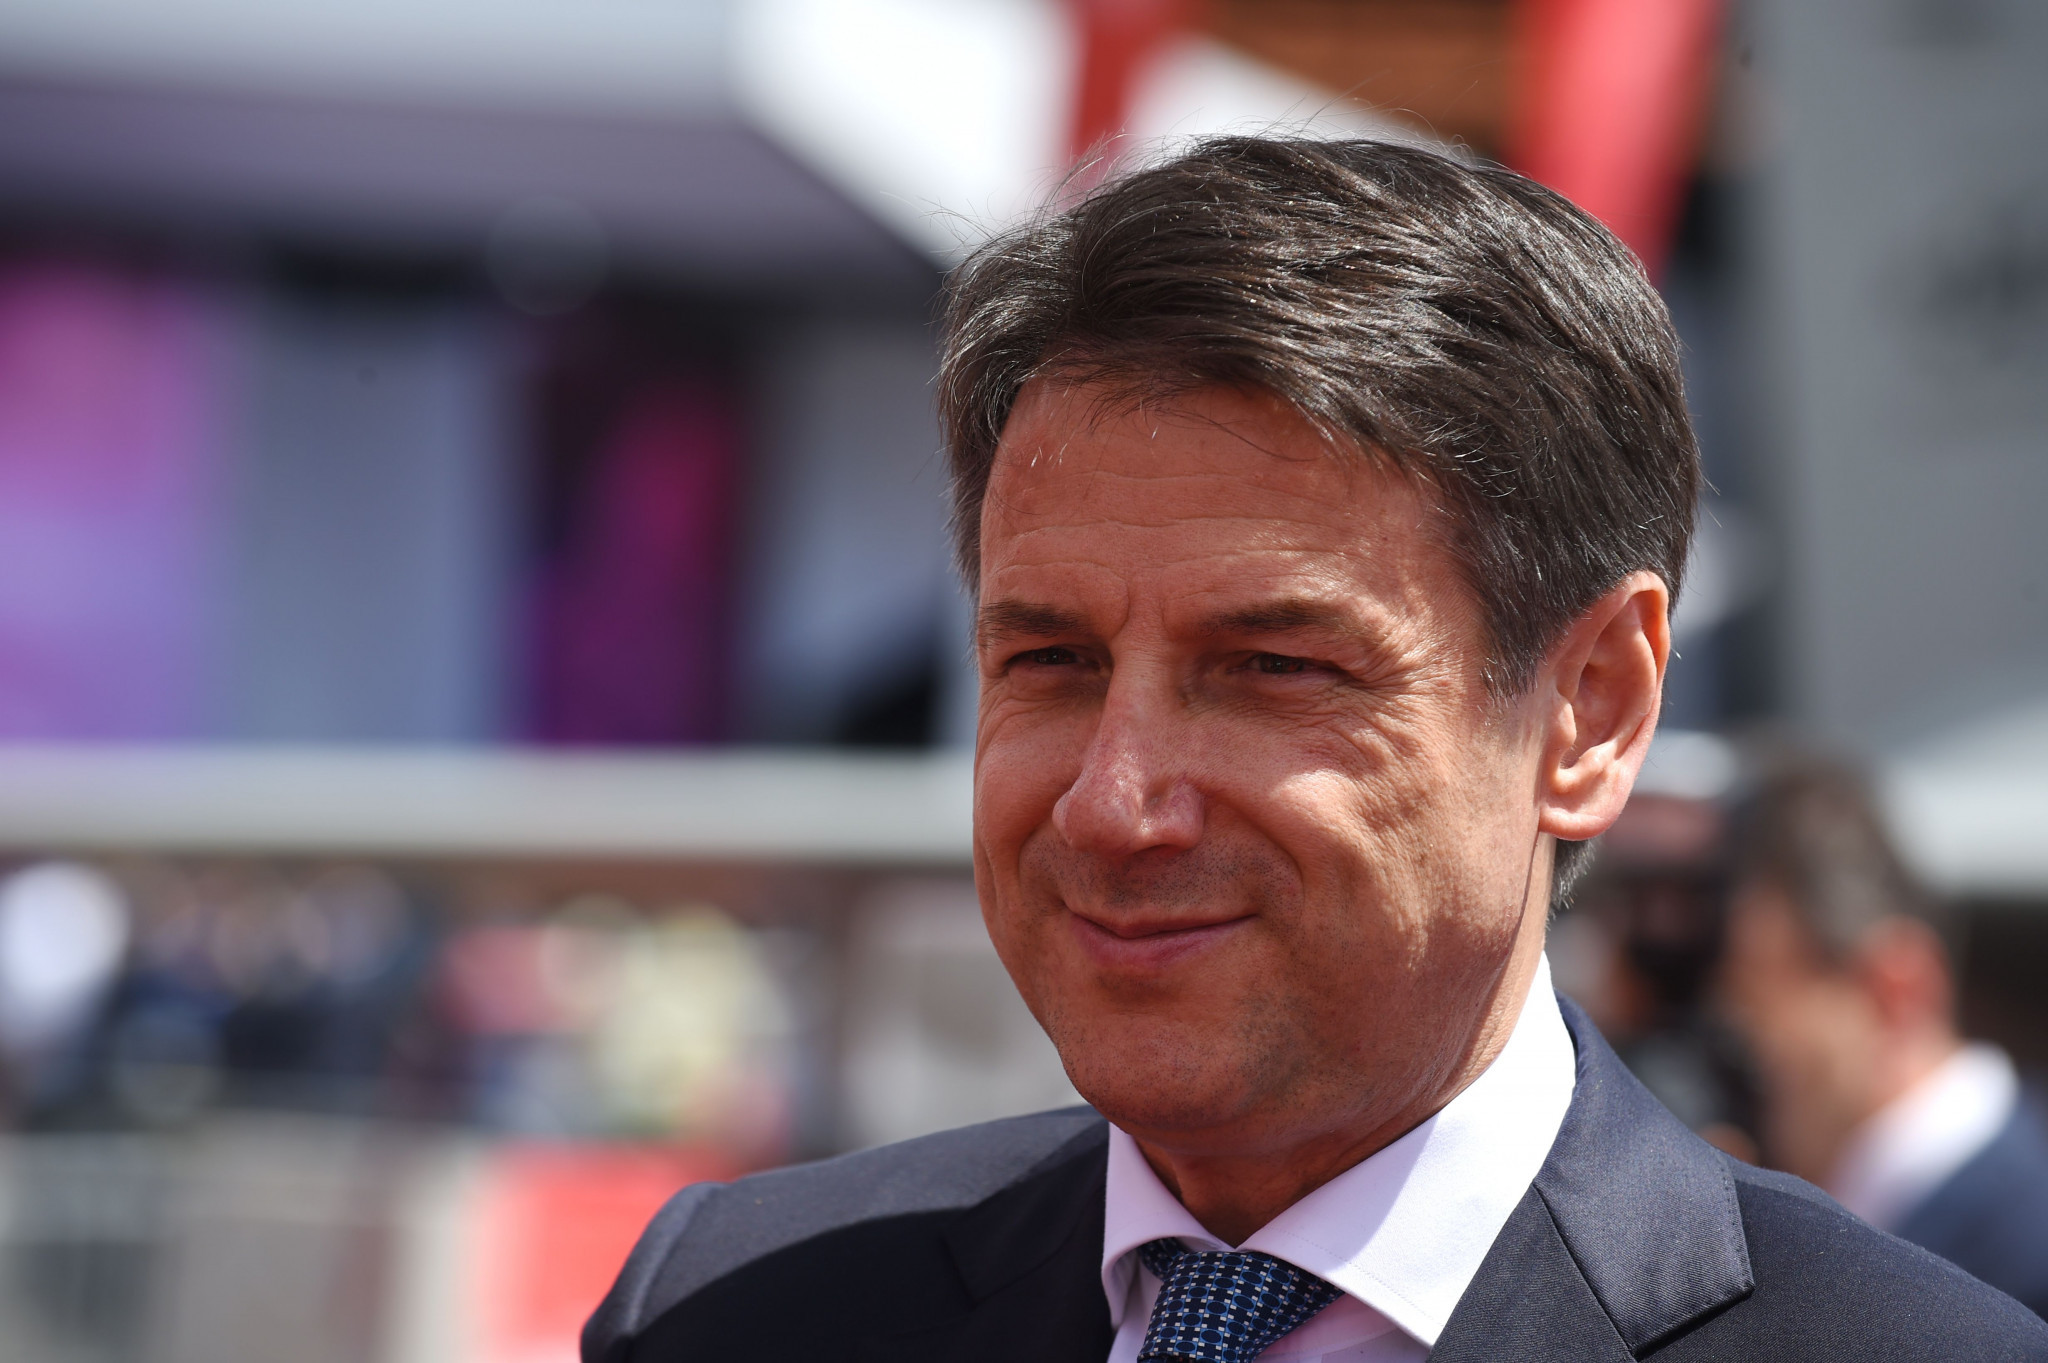 Italian Prime Minister to attend vote on 2026 Winter Olympic Games host to support Milan Cortina